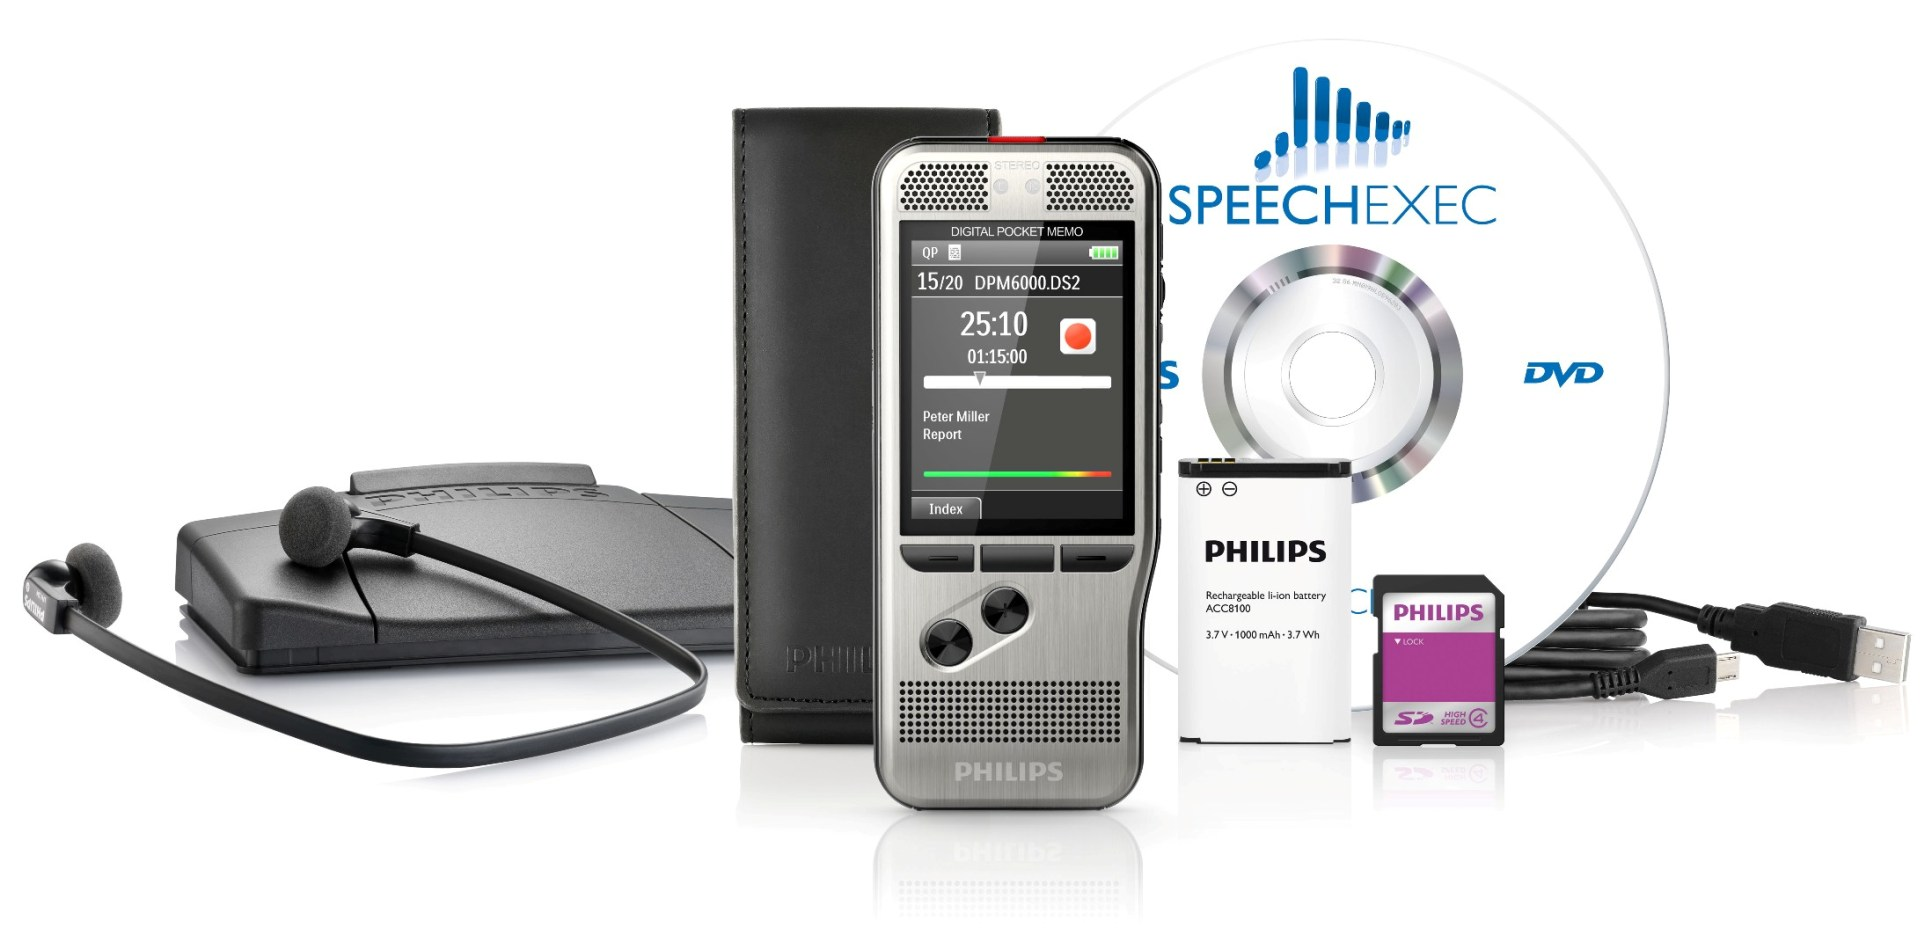 Philips Pocket Memo Dictation and Transcription set. DPM 6700 DPM4 Starter Kit by Grafimedia.eu